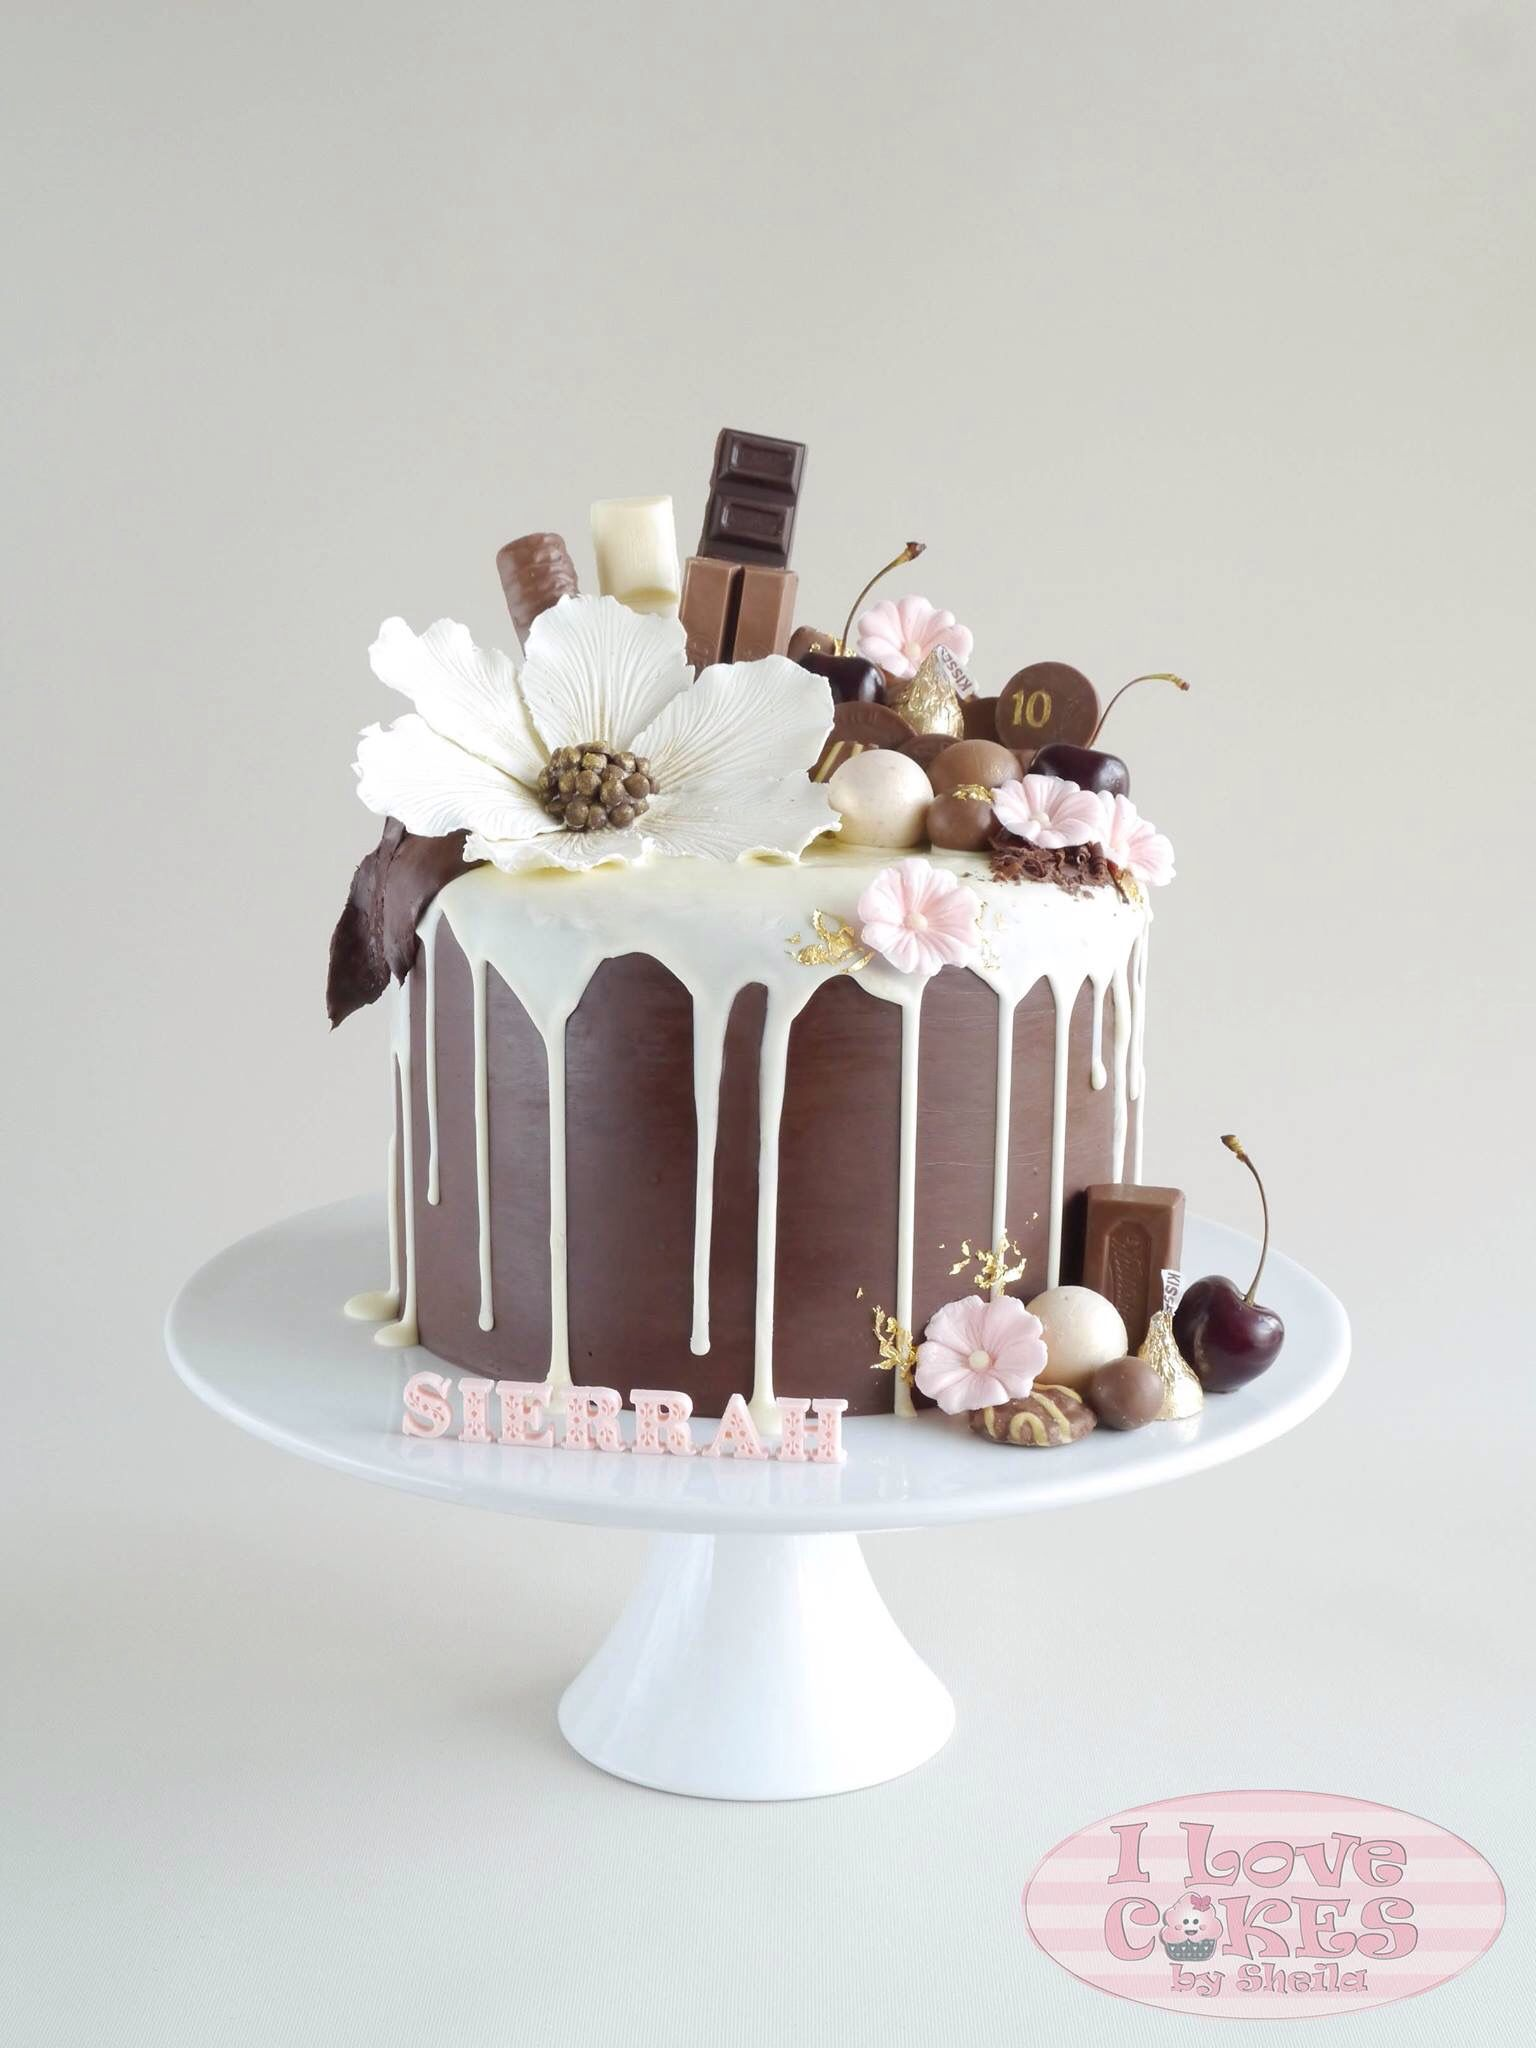 Drippy Chocolate Cake With Beautiful Flowers Decorating The Top